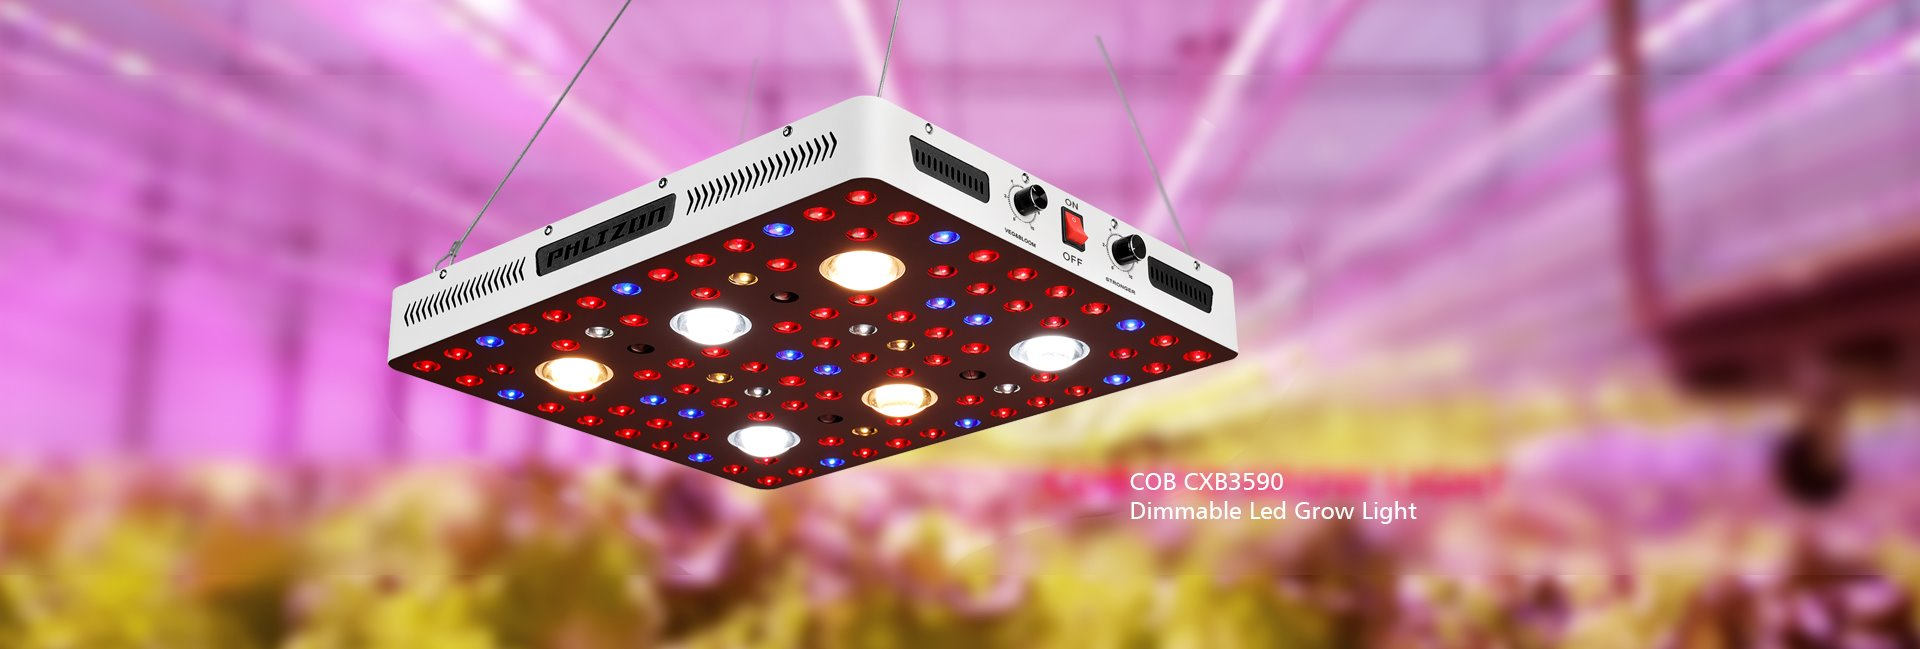 COB CXB3590 LED Plant Light